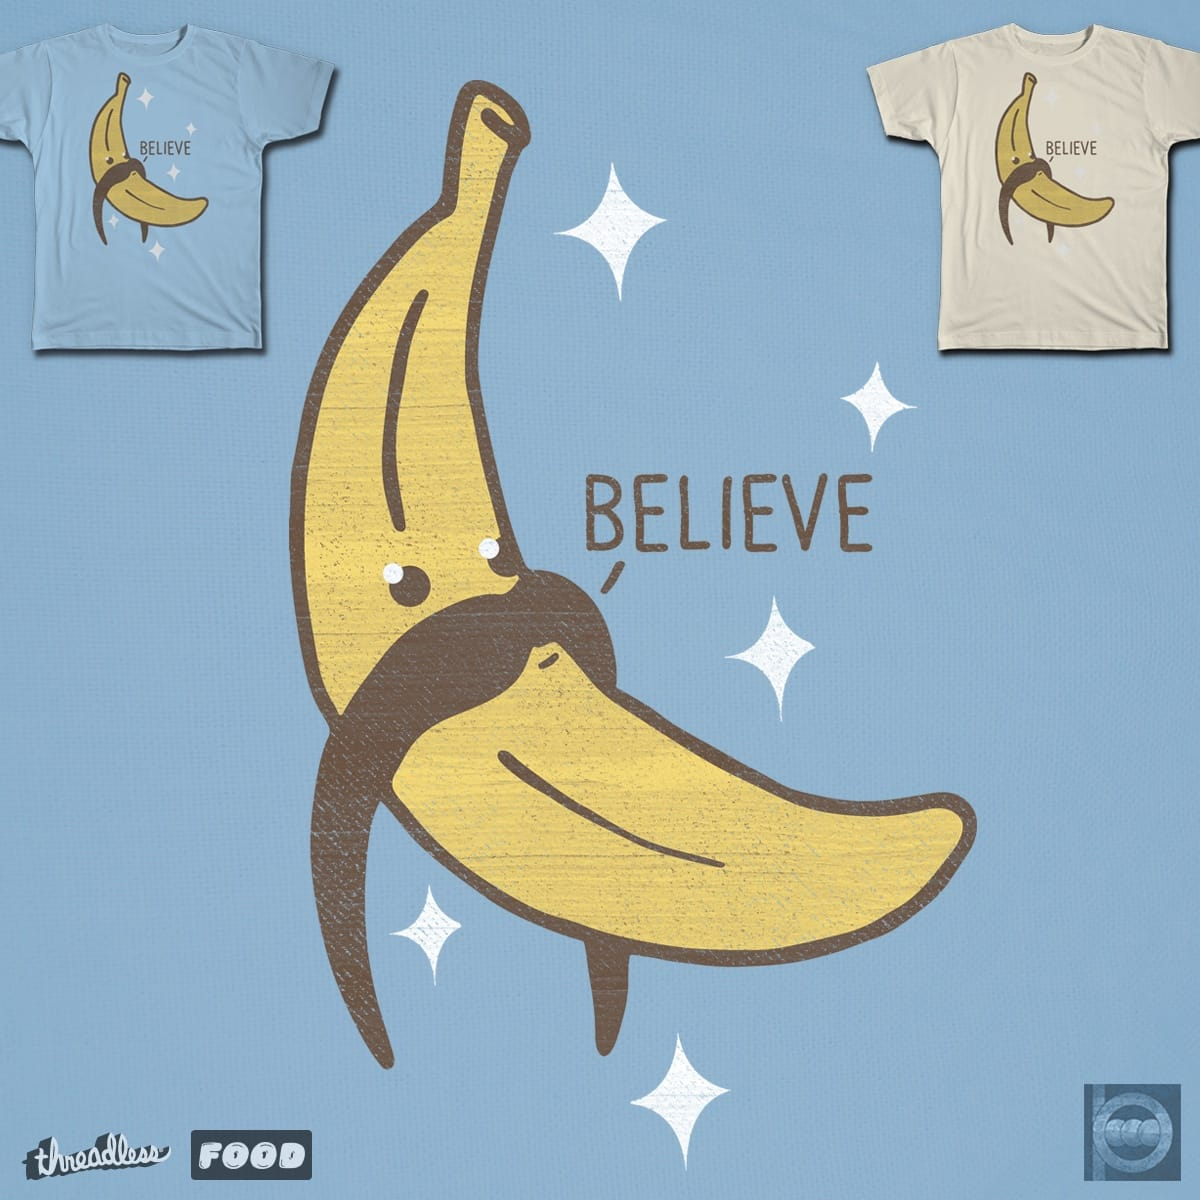 BELIEVE by BeanePod on Threadless